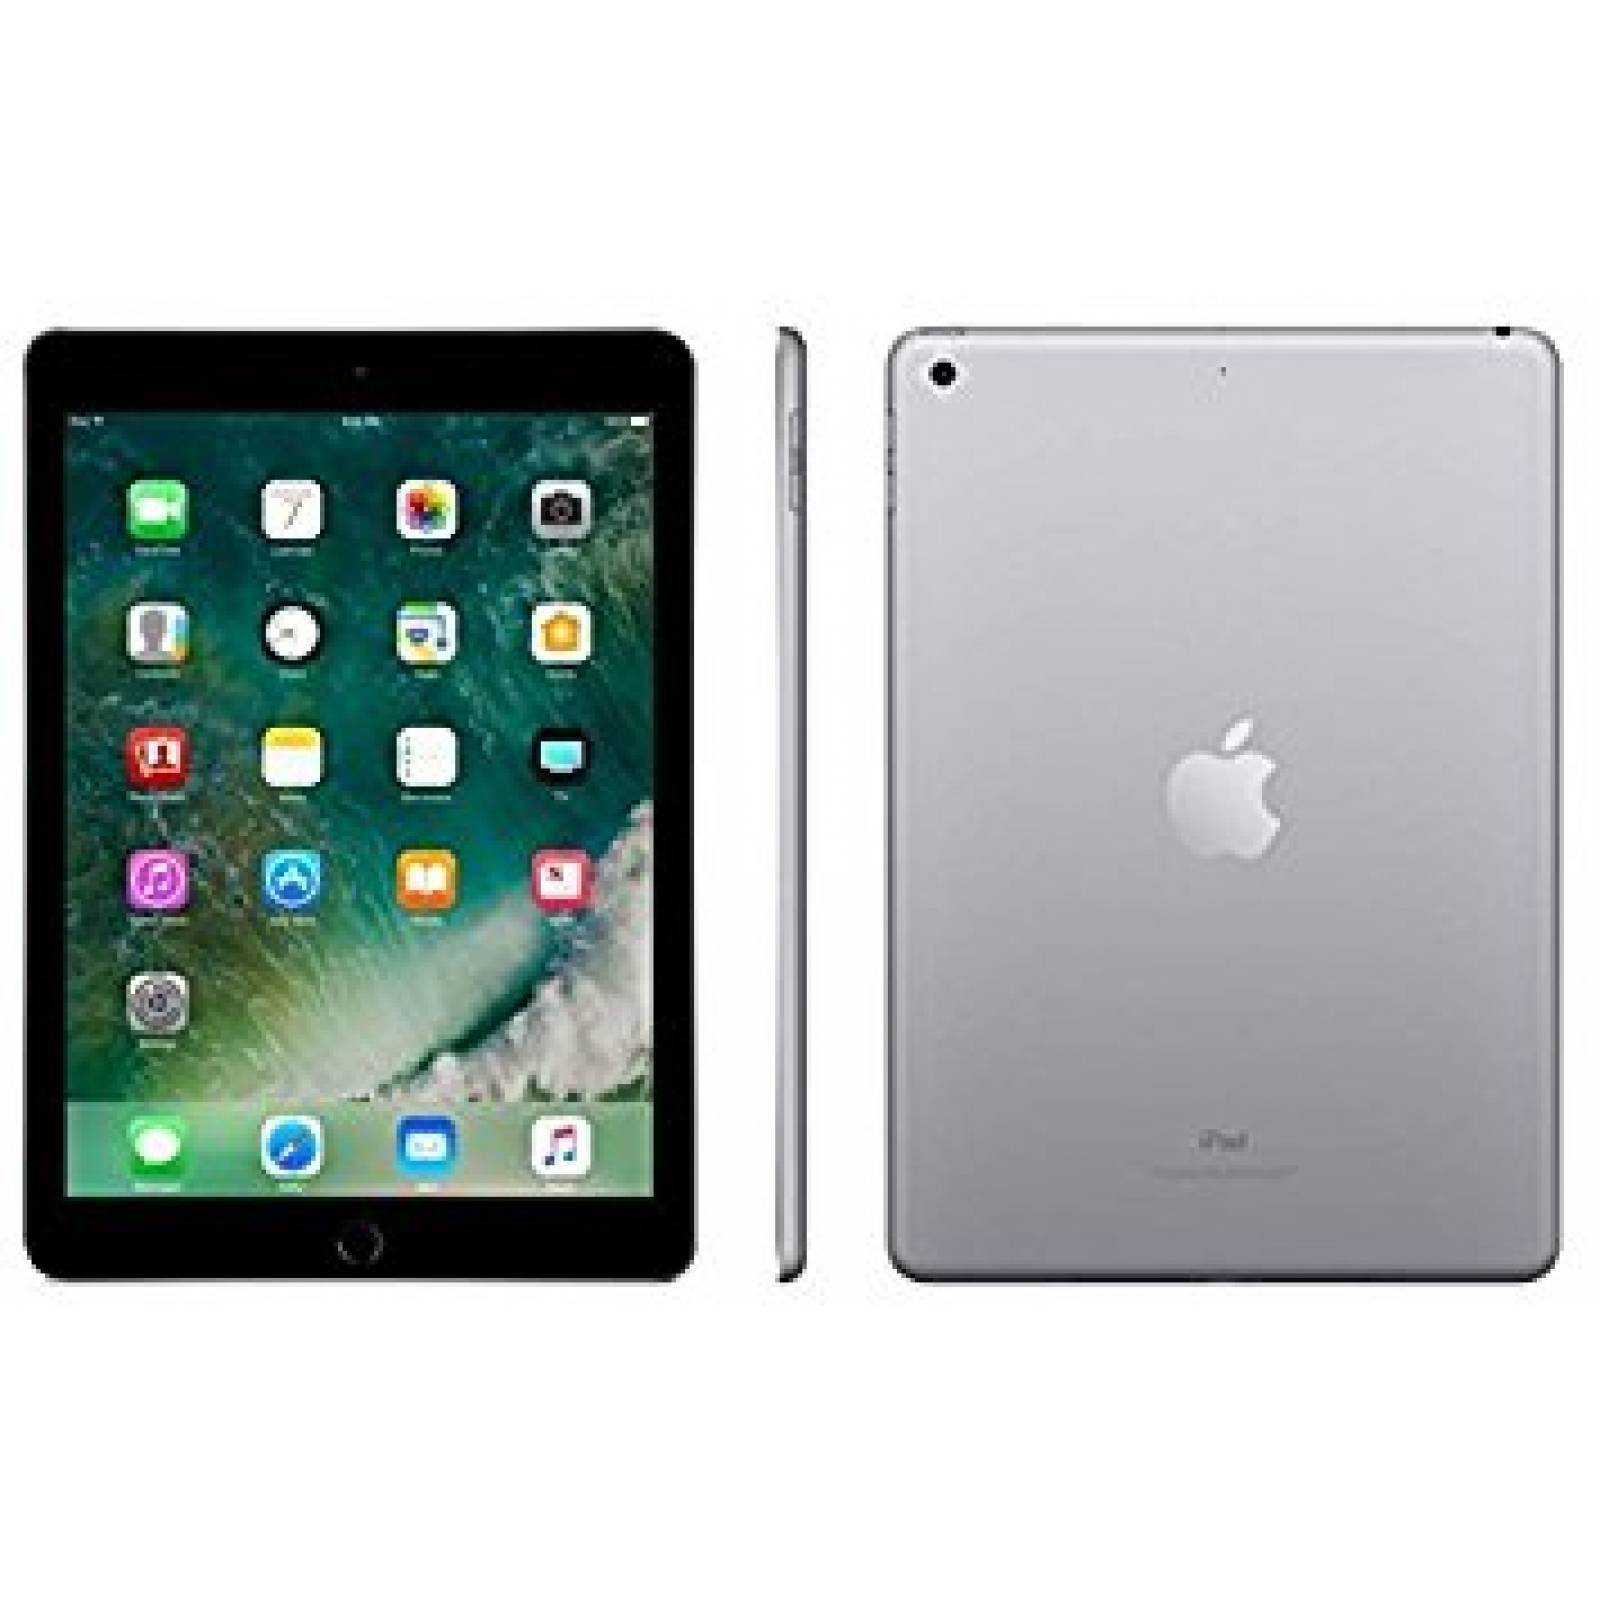 "iPad 6 Apple 128GB Cinza Espacial Tela 9.7"" Retina - Proc. Chip A10 Câm. 8MP + Frontal iOS 11 Touch ID"